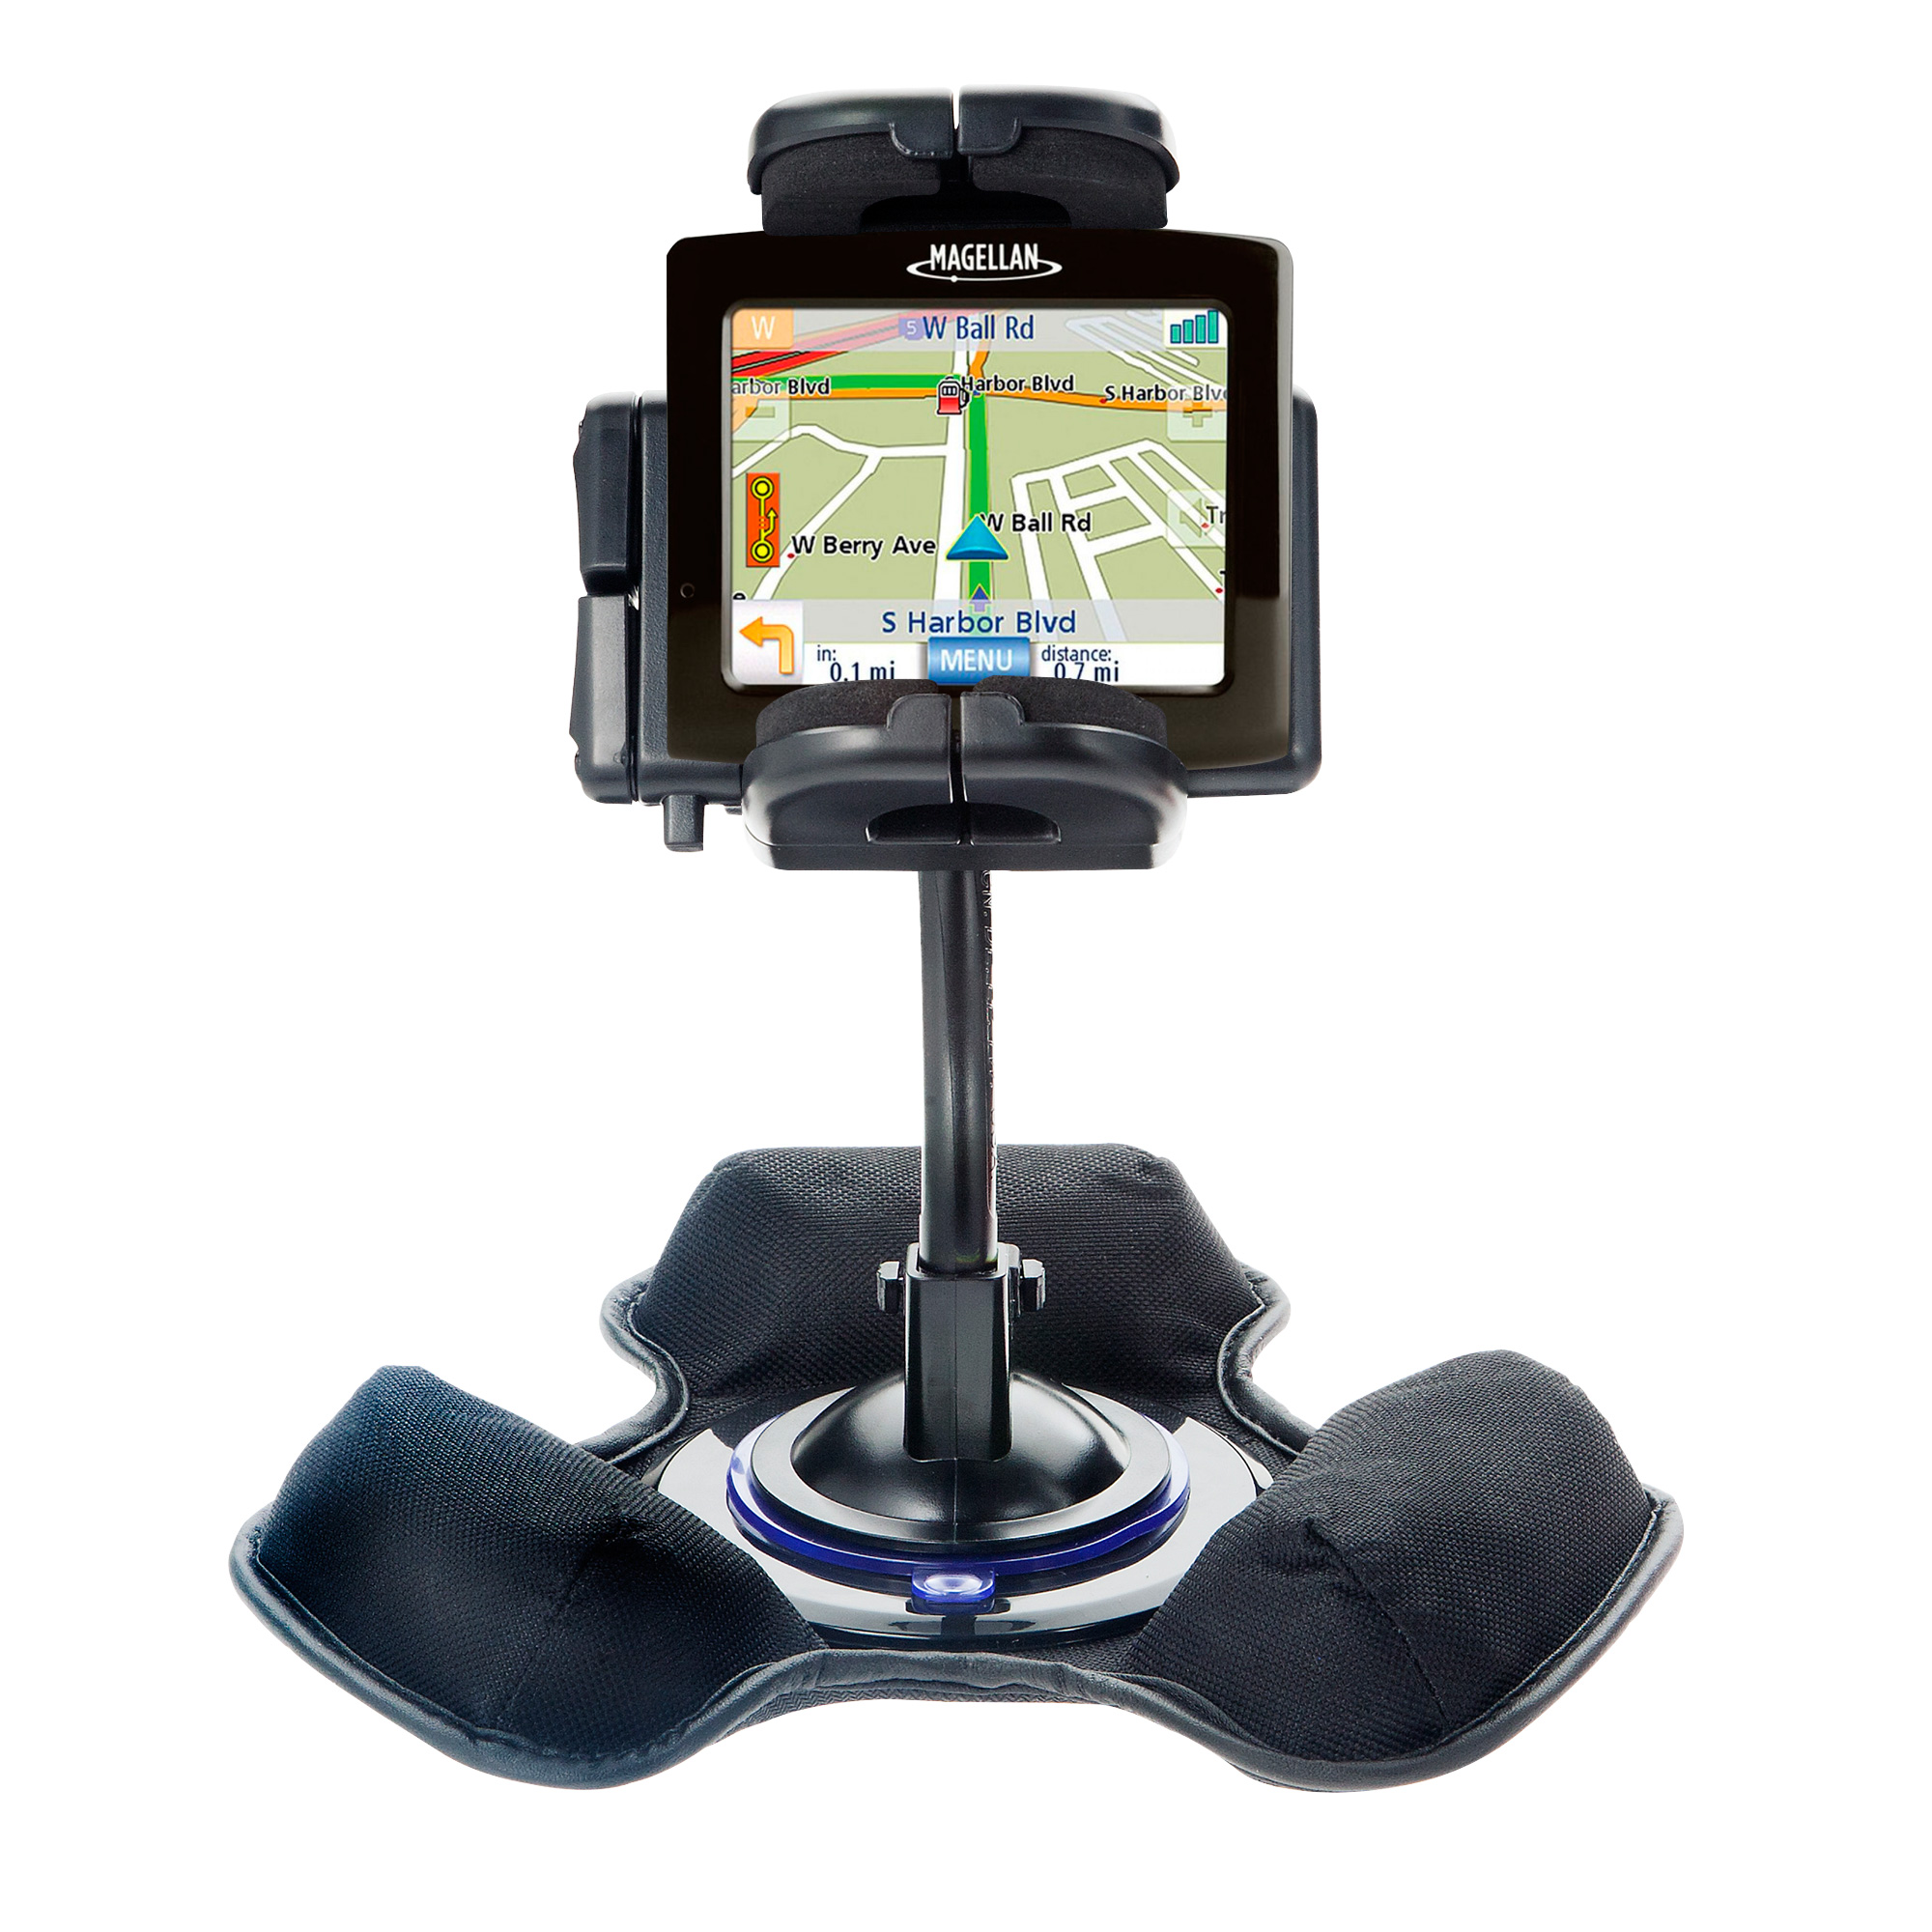 Car / Truck Vehicle Holder Mounting System for Magellan Maestro 3200 Includes Unique Flexible Windshield Suction and Universal Dashboard Mount Options